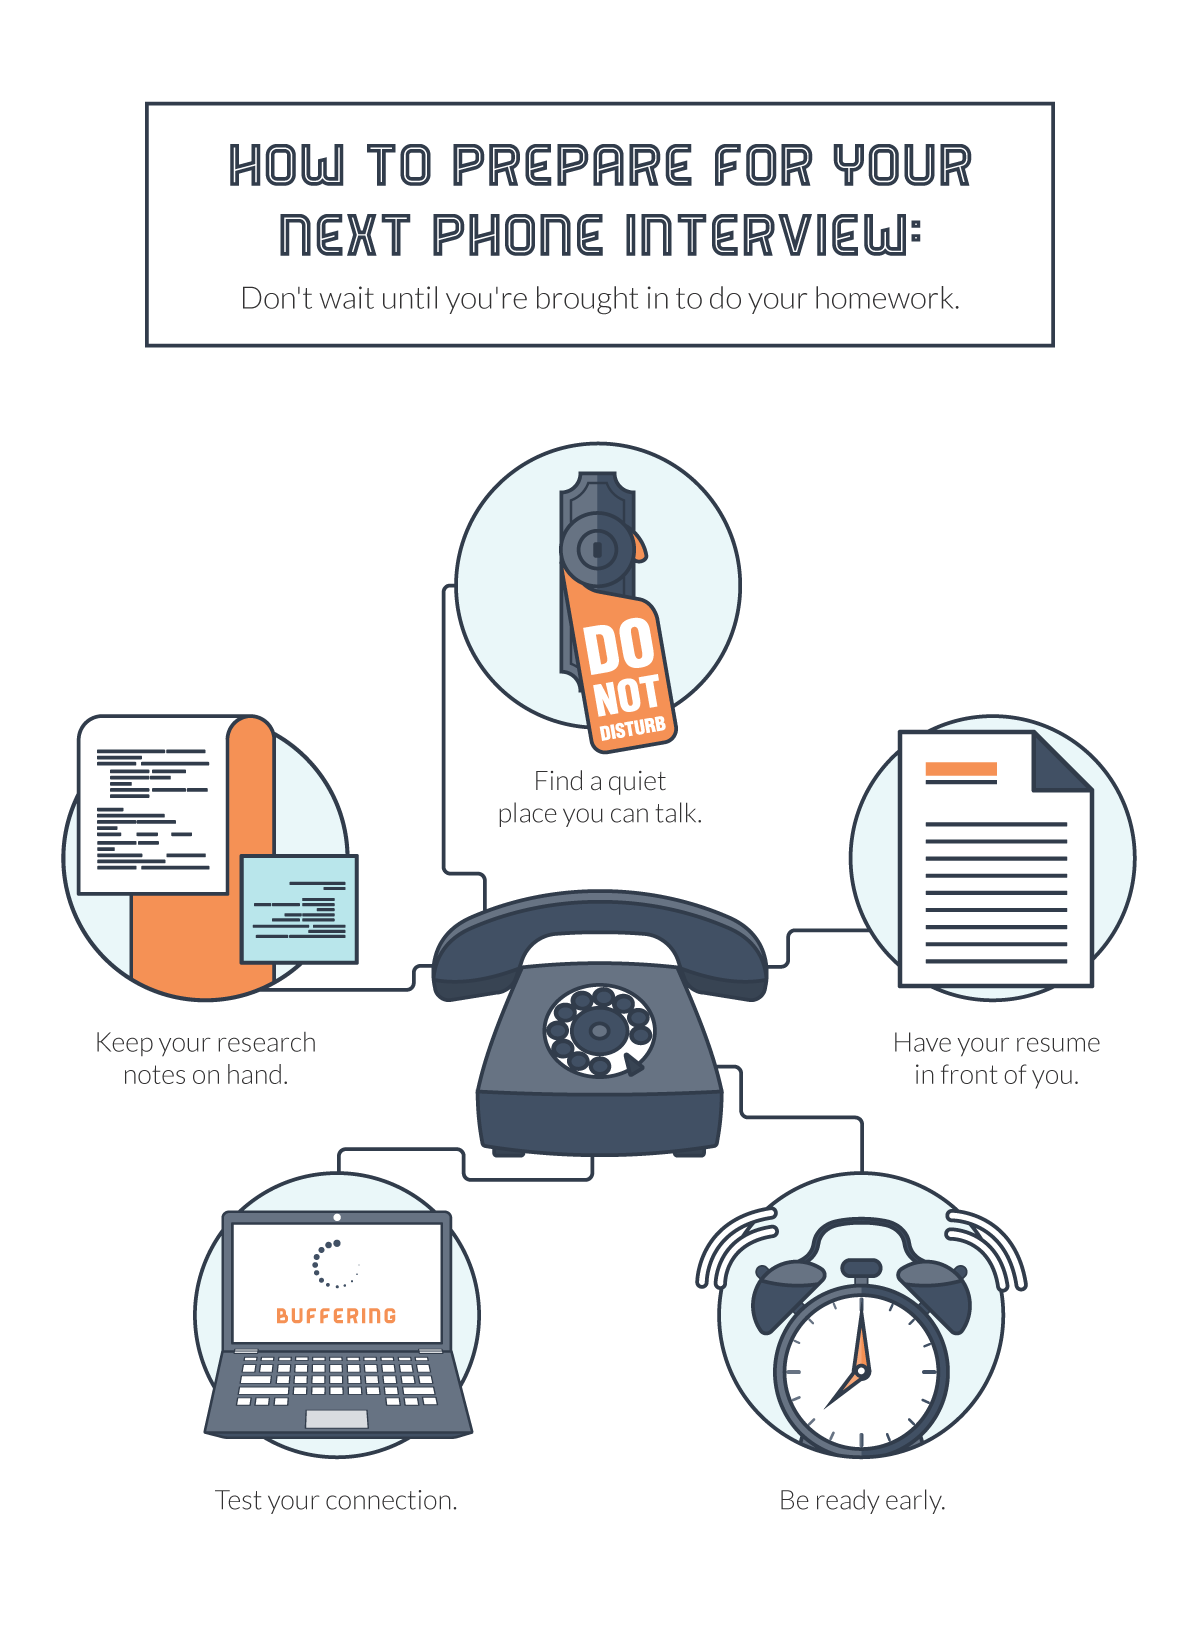 treat your phone interview just like you would an in person interview and prepare